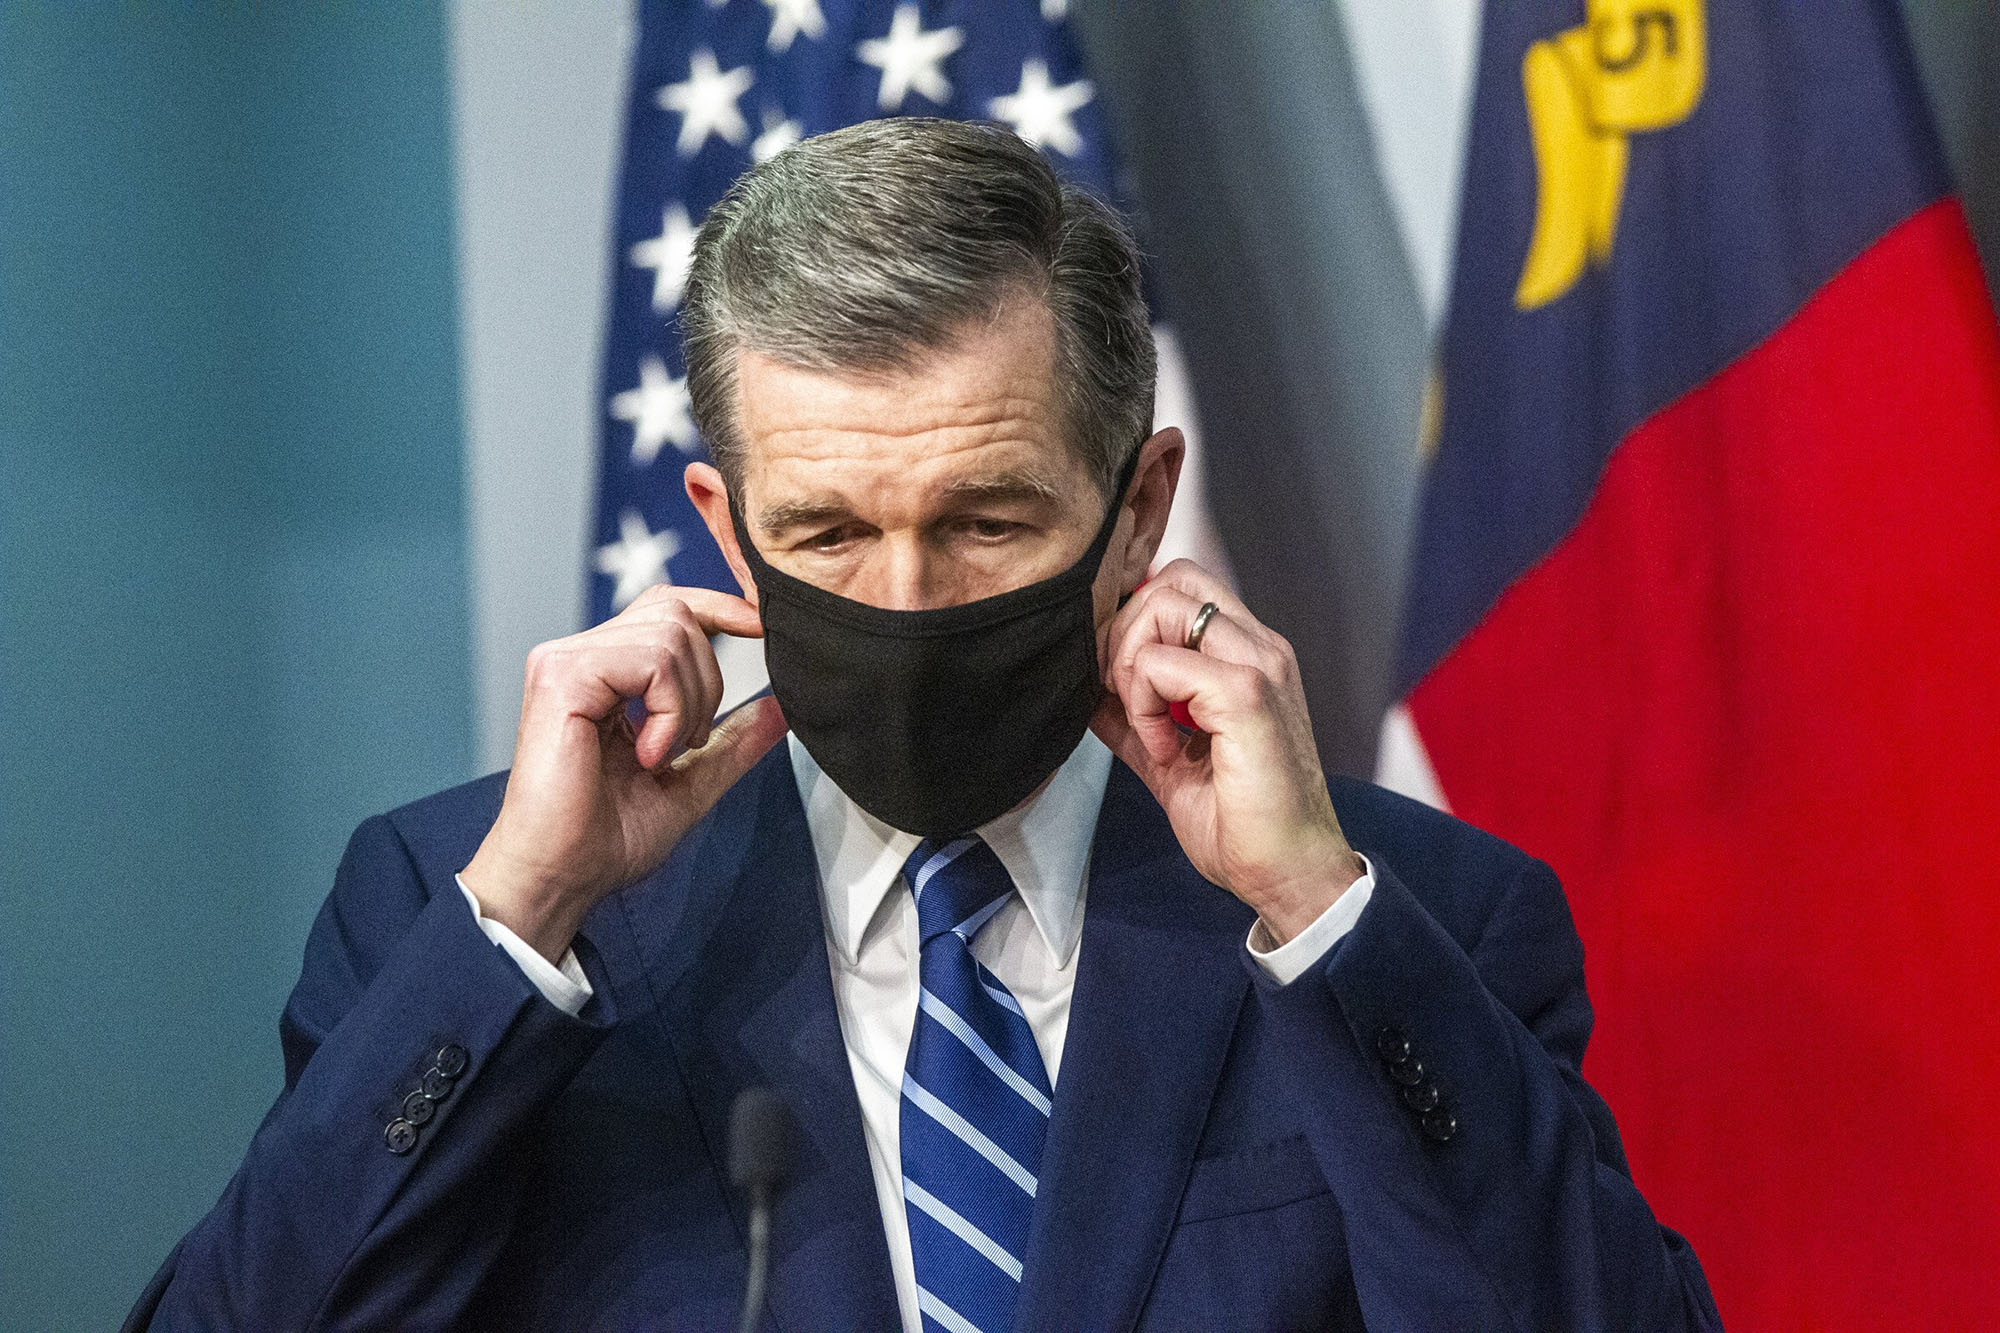 Gov. Roy Cooper removes his mask before speaking at a briefing on the state's coronavirus pandemic response at the N.C. Emergency Operations Center in Raleigh, North Carolian, on December 8.